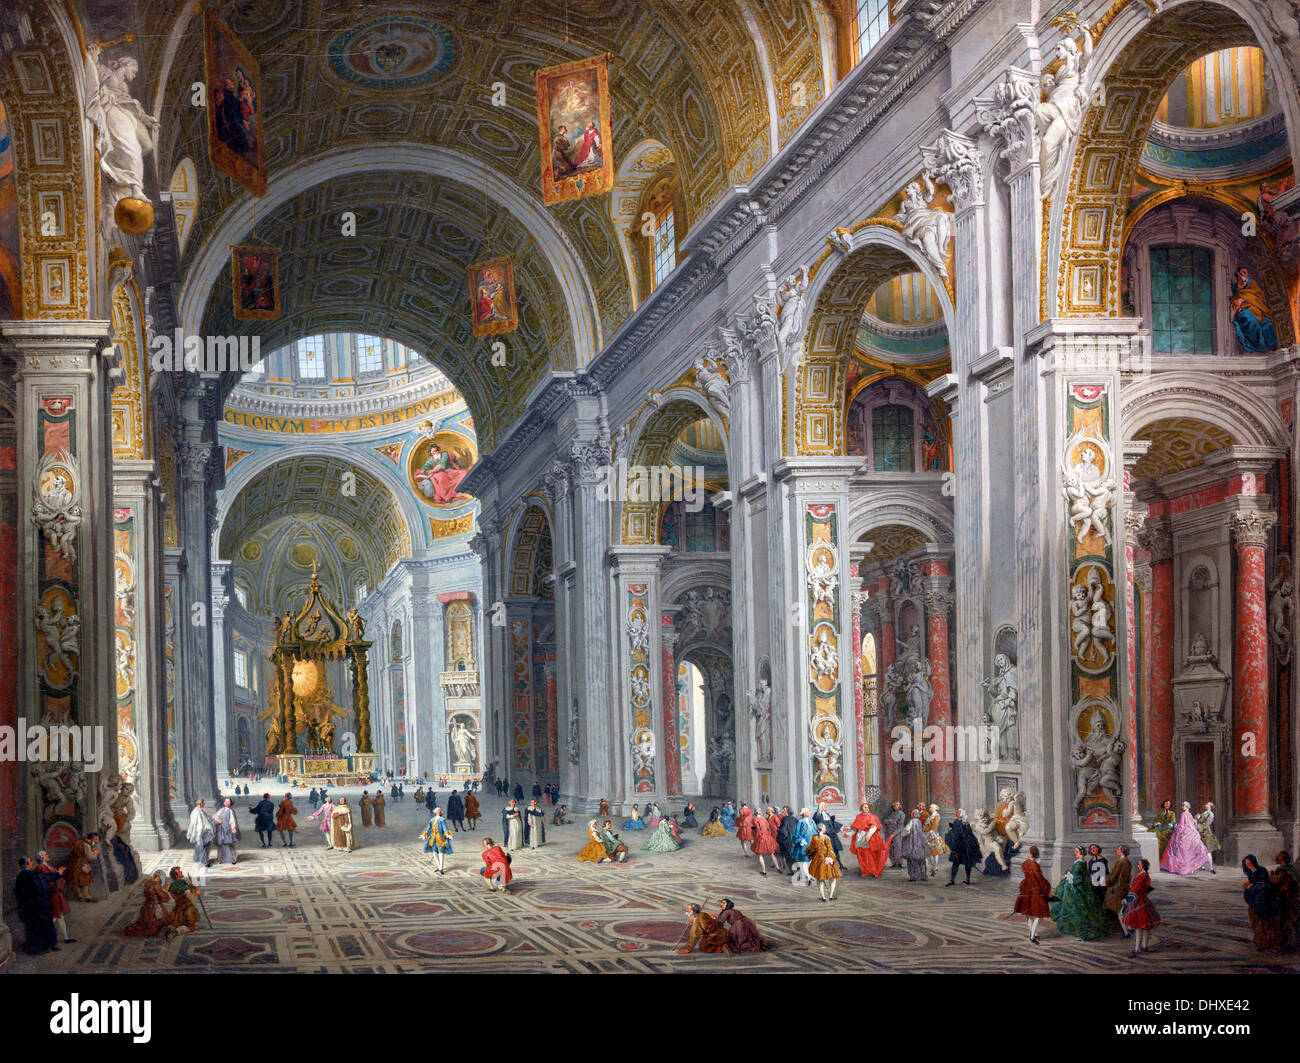 Interior of Saint Peter's, Rome - by Giovanni Paolo Panini, 1754 - Stock Image